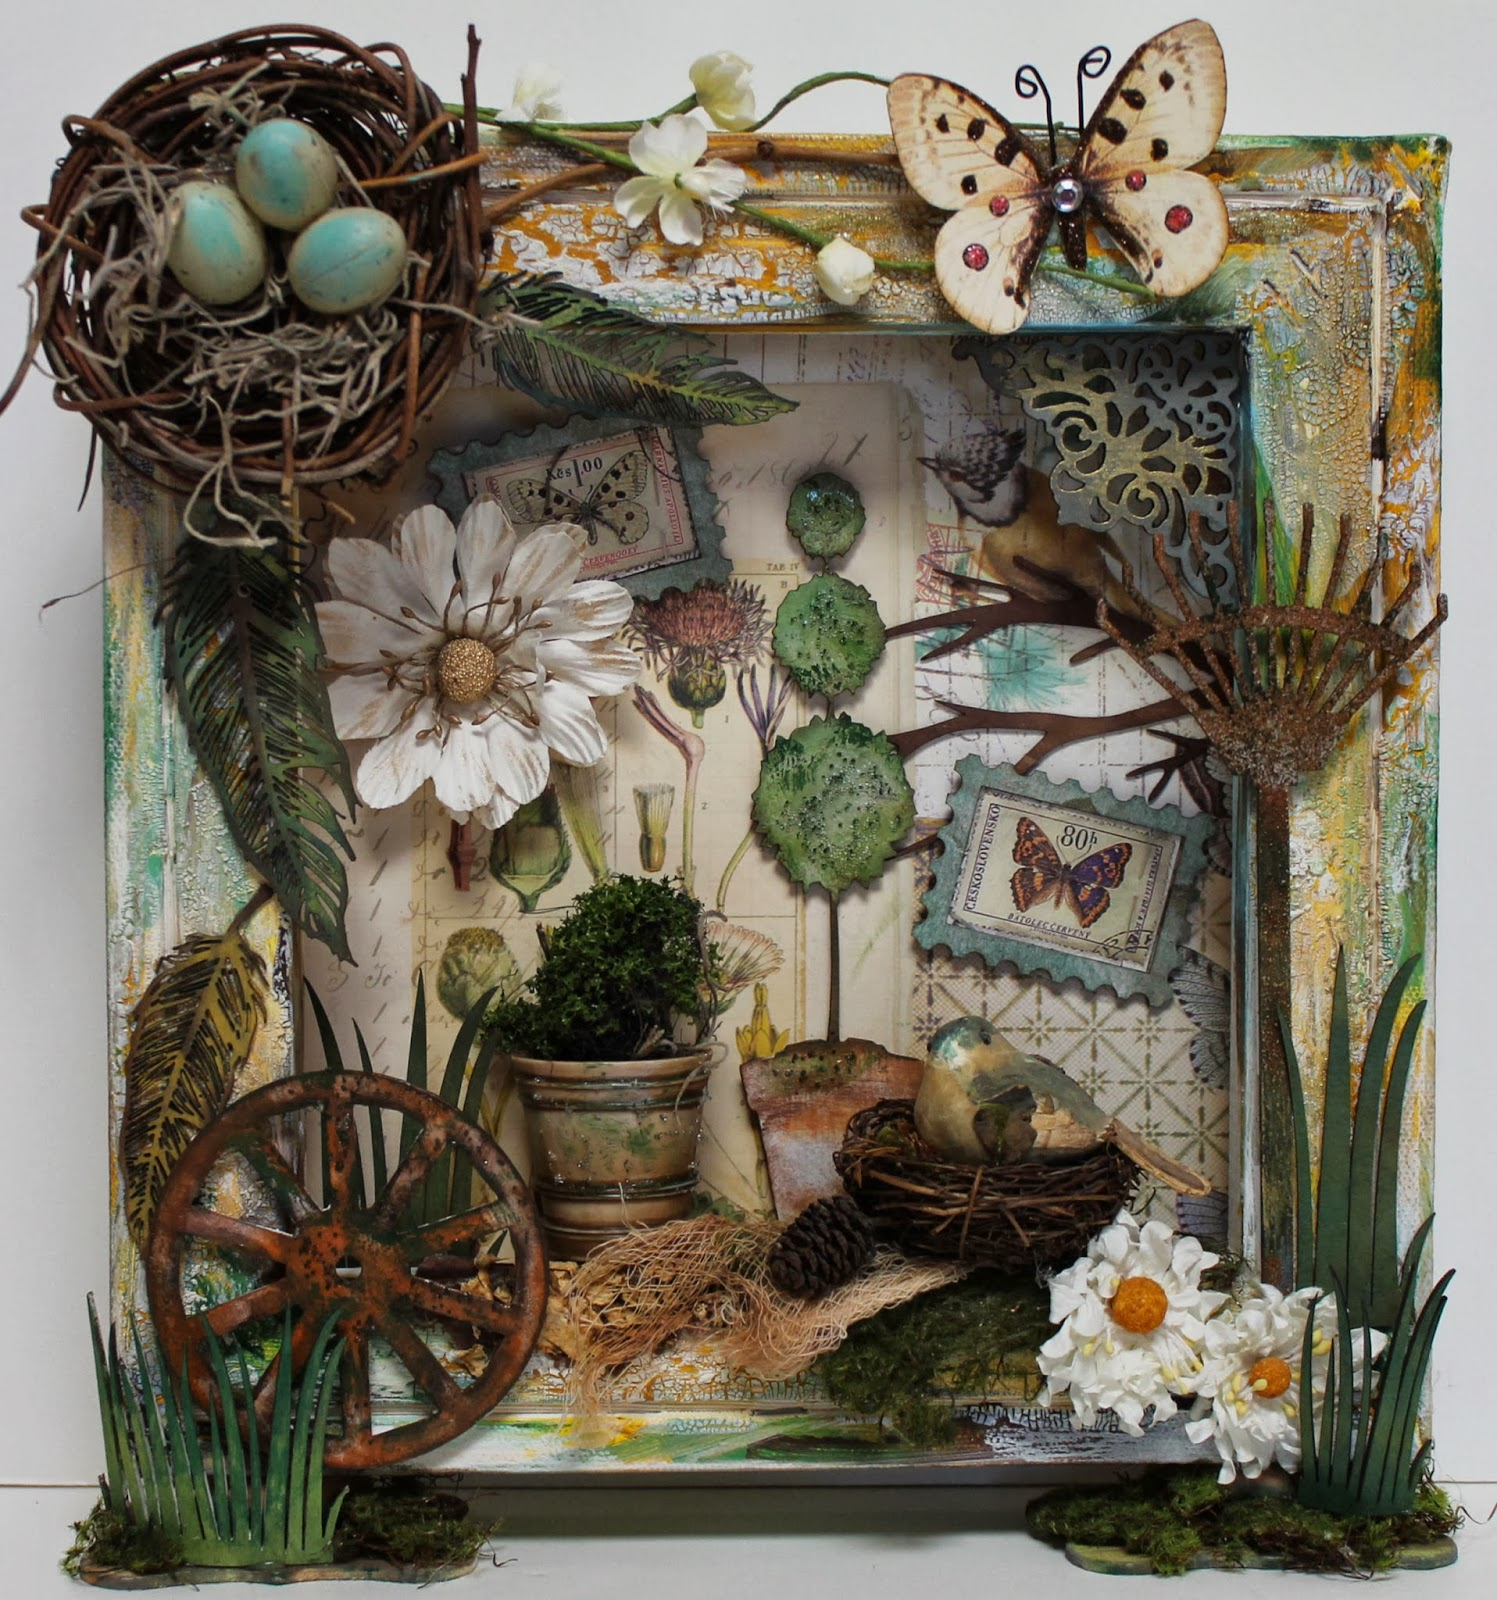 Ginas Designs Altered Canvas In A Garden Theme By Nancy And